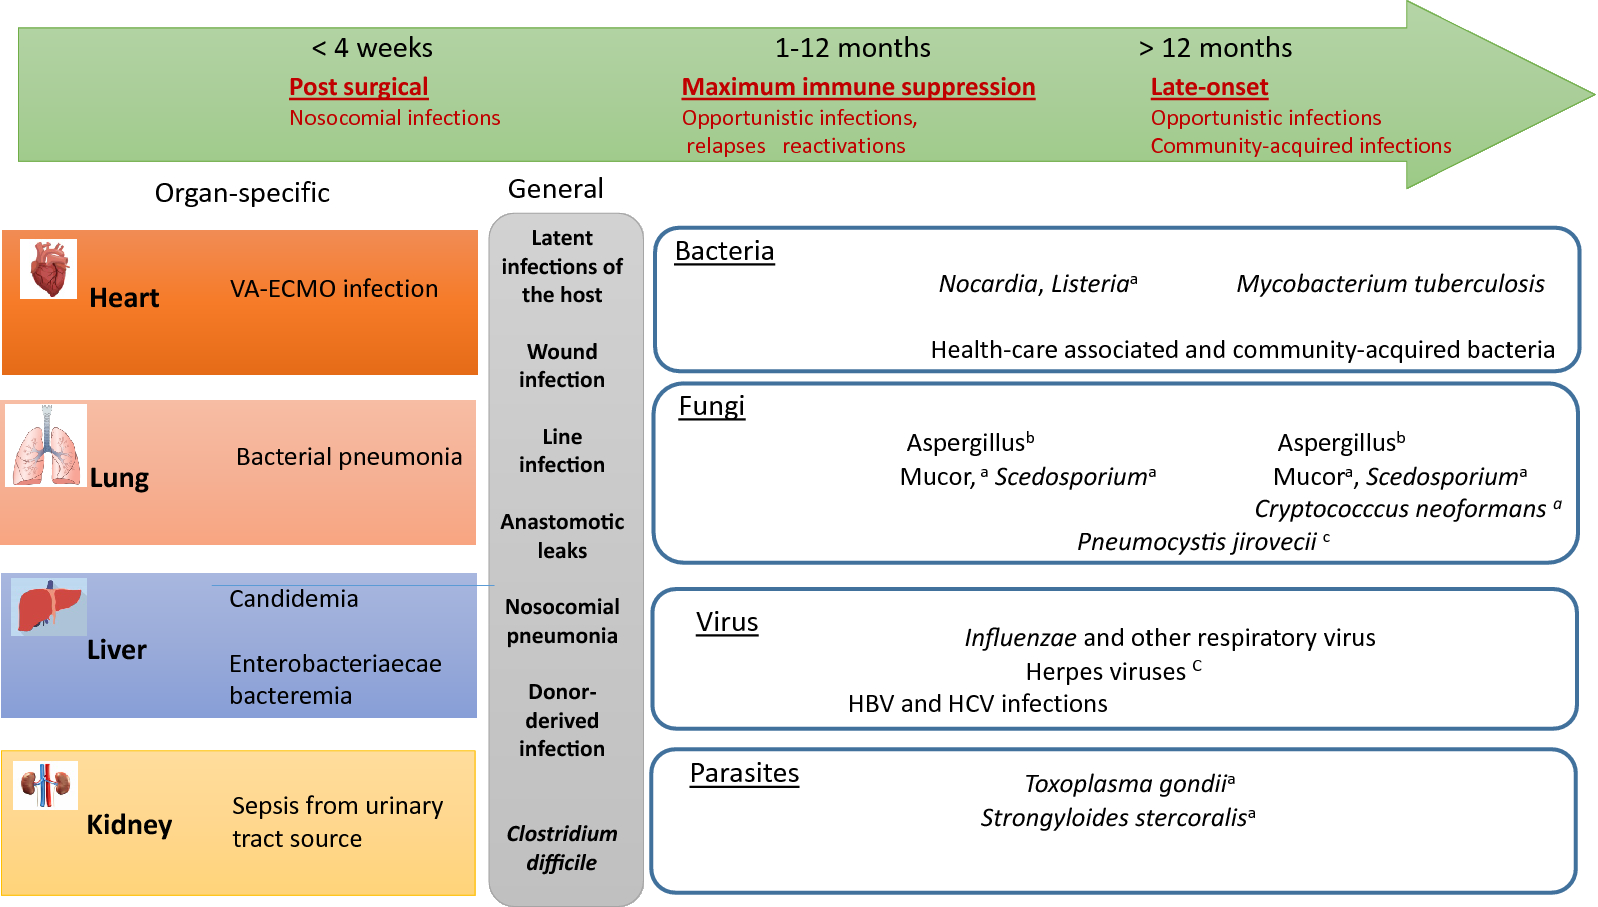 Diagnostic and therapeutic approach to infectious diseases